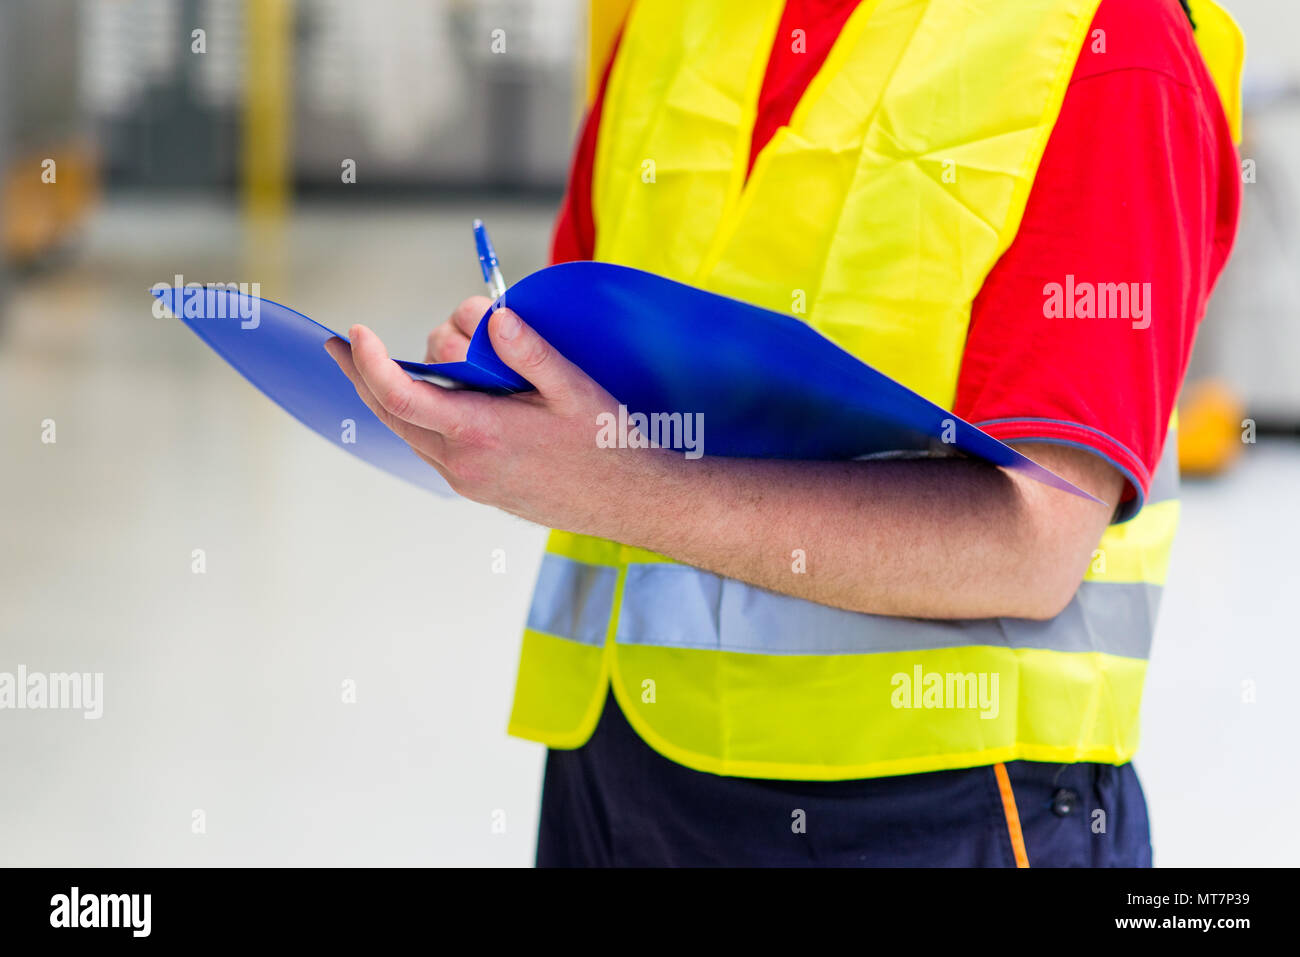 Factory supervisor in yellow reflective west. Factory engineer holding blue folder with documents - Stock Image